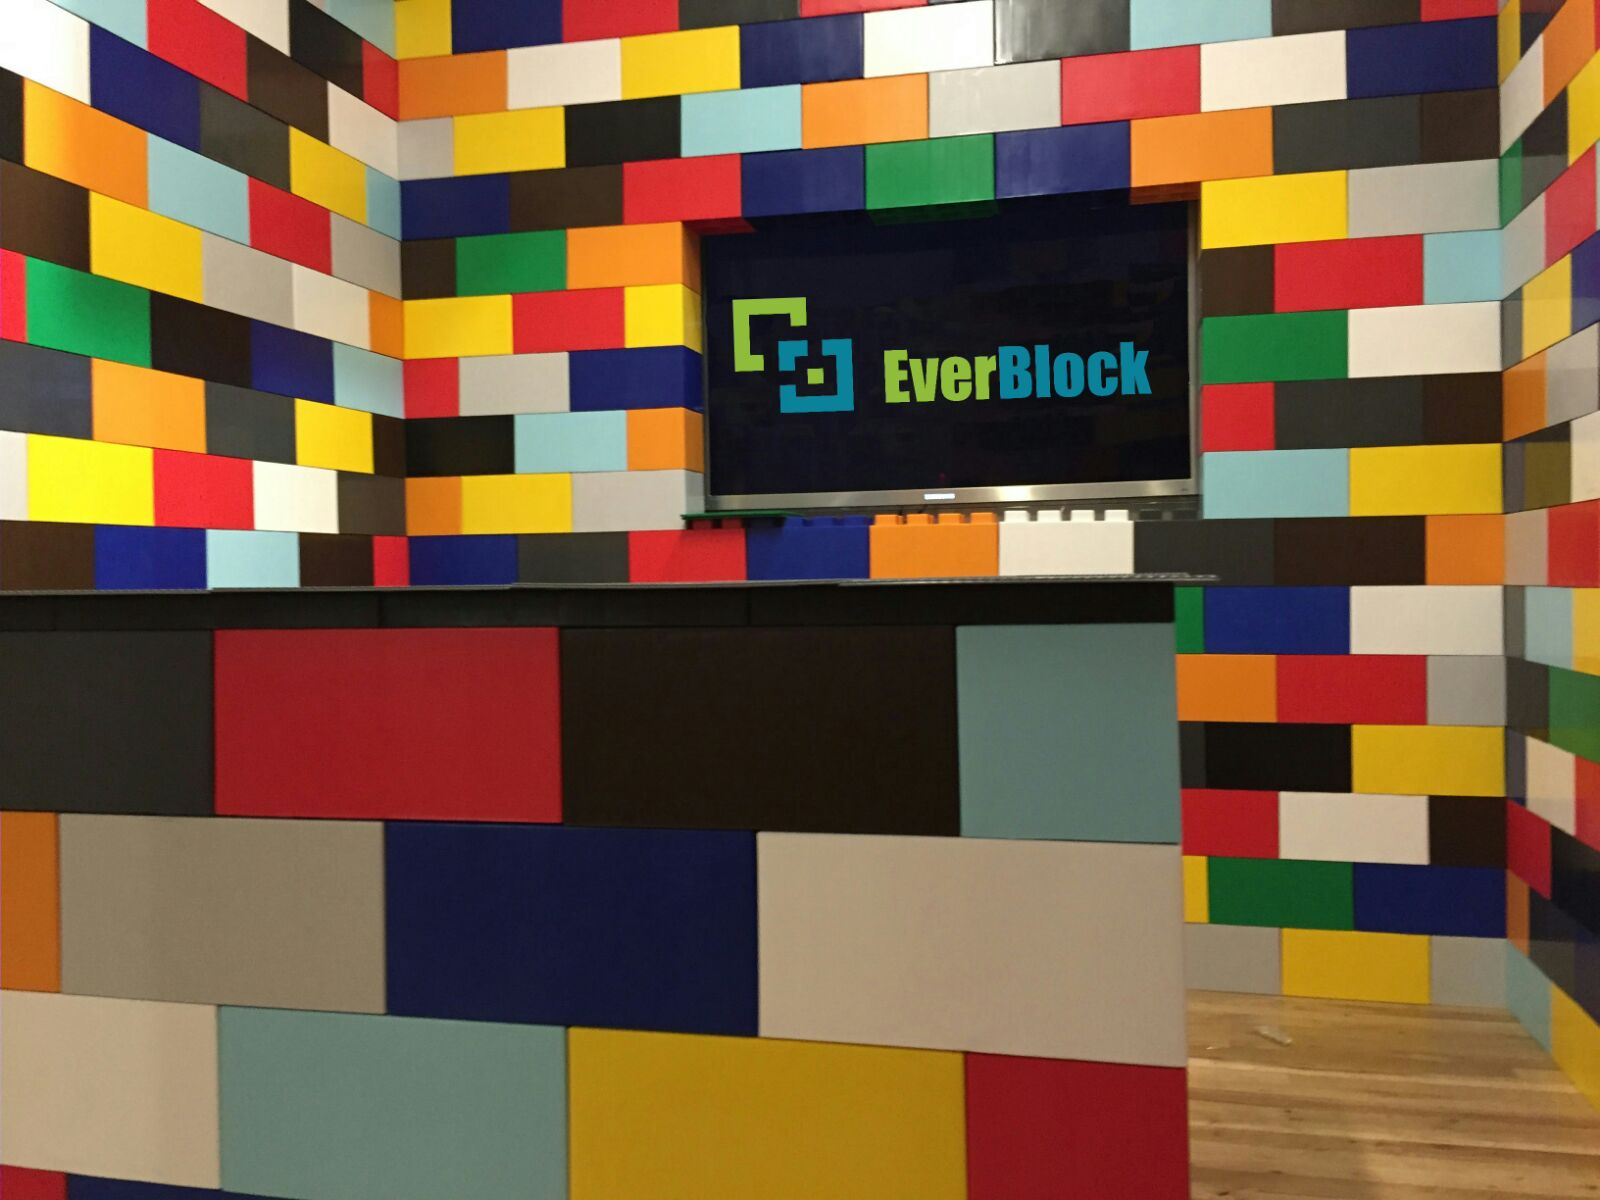 Create colorful custom displays that are modular, easy to reconfigure and attractive